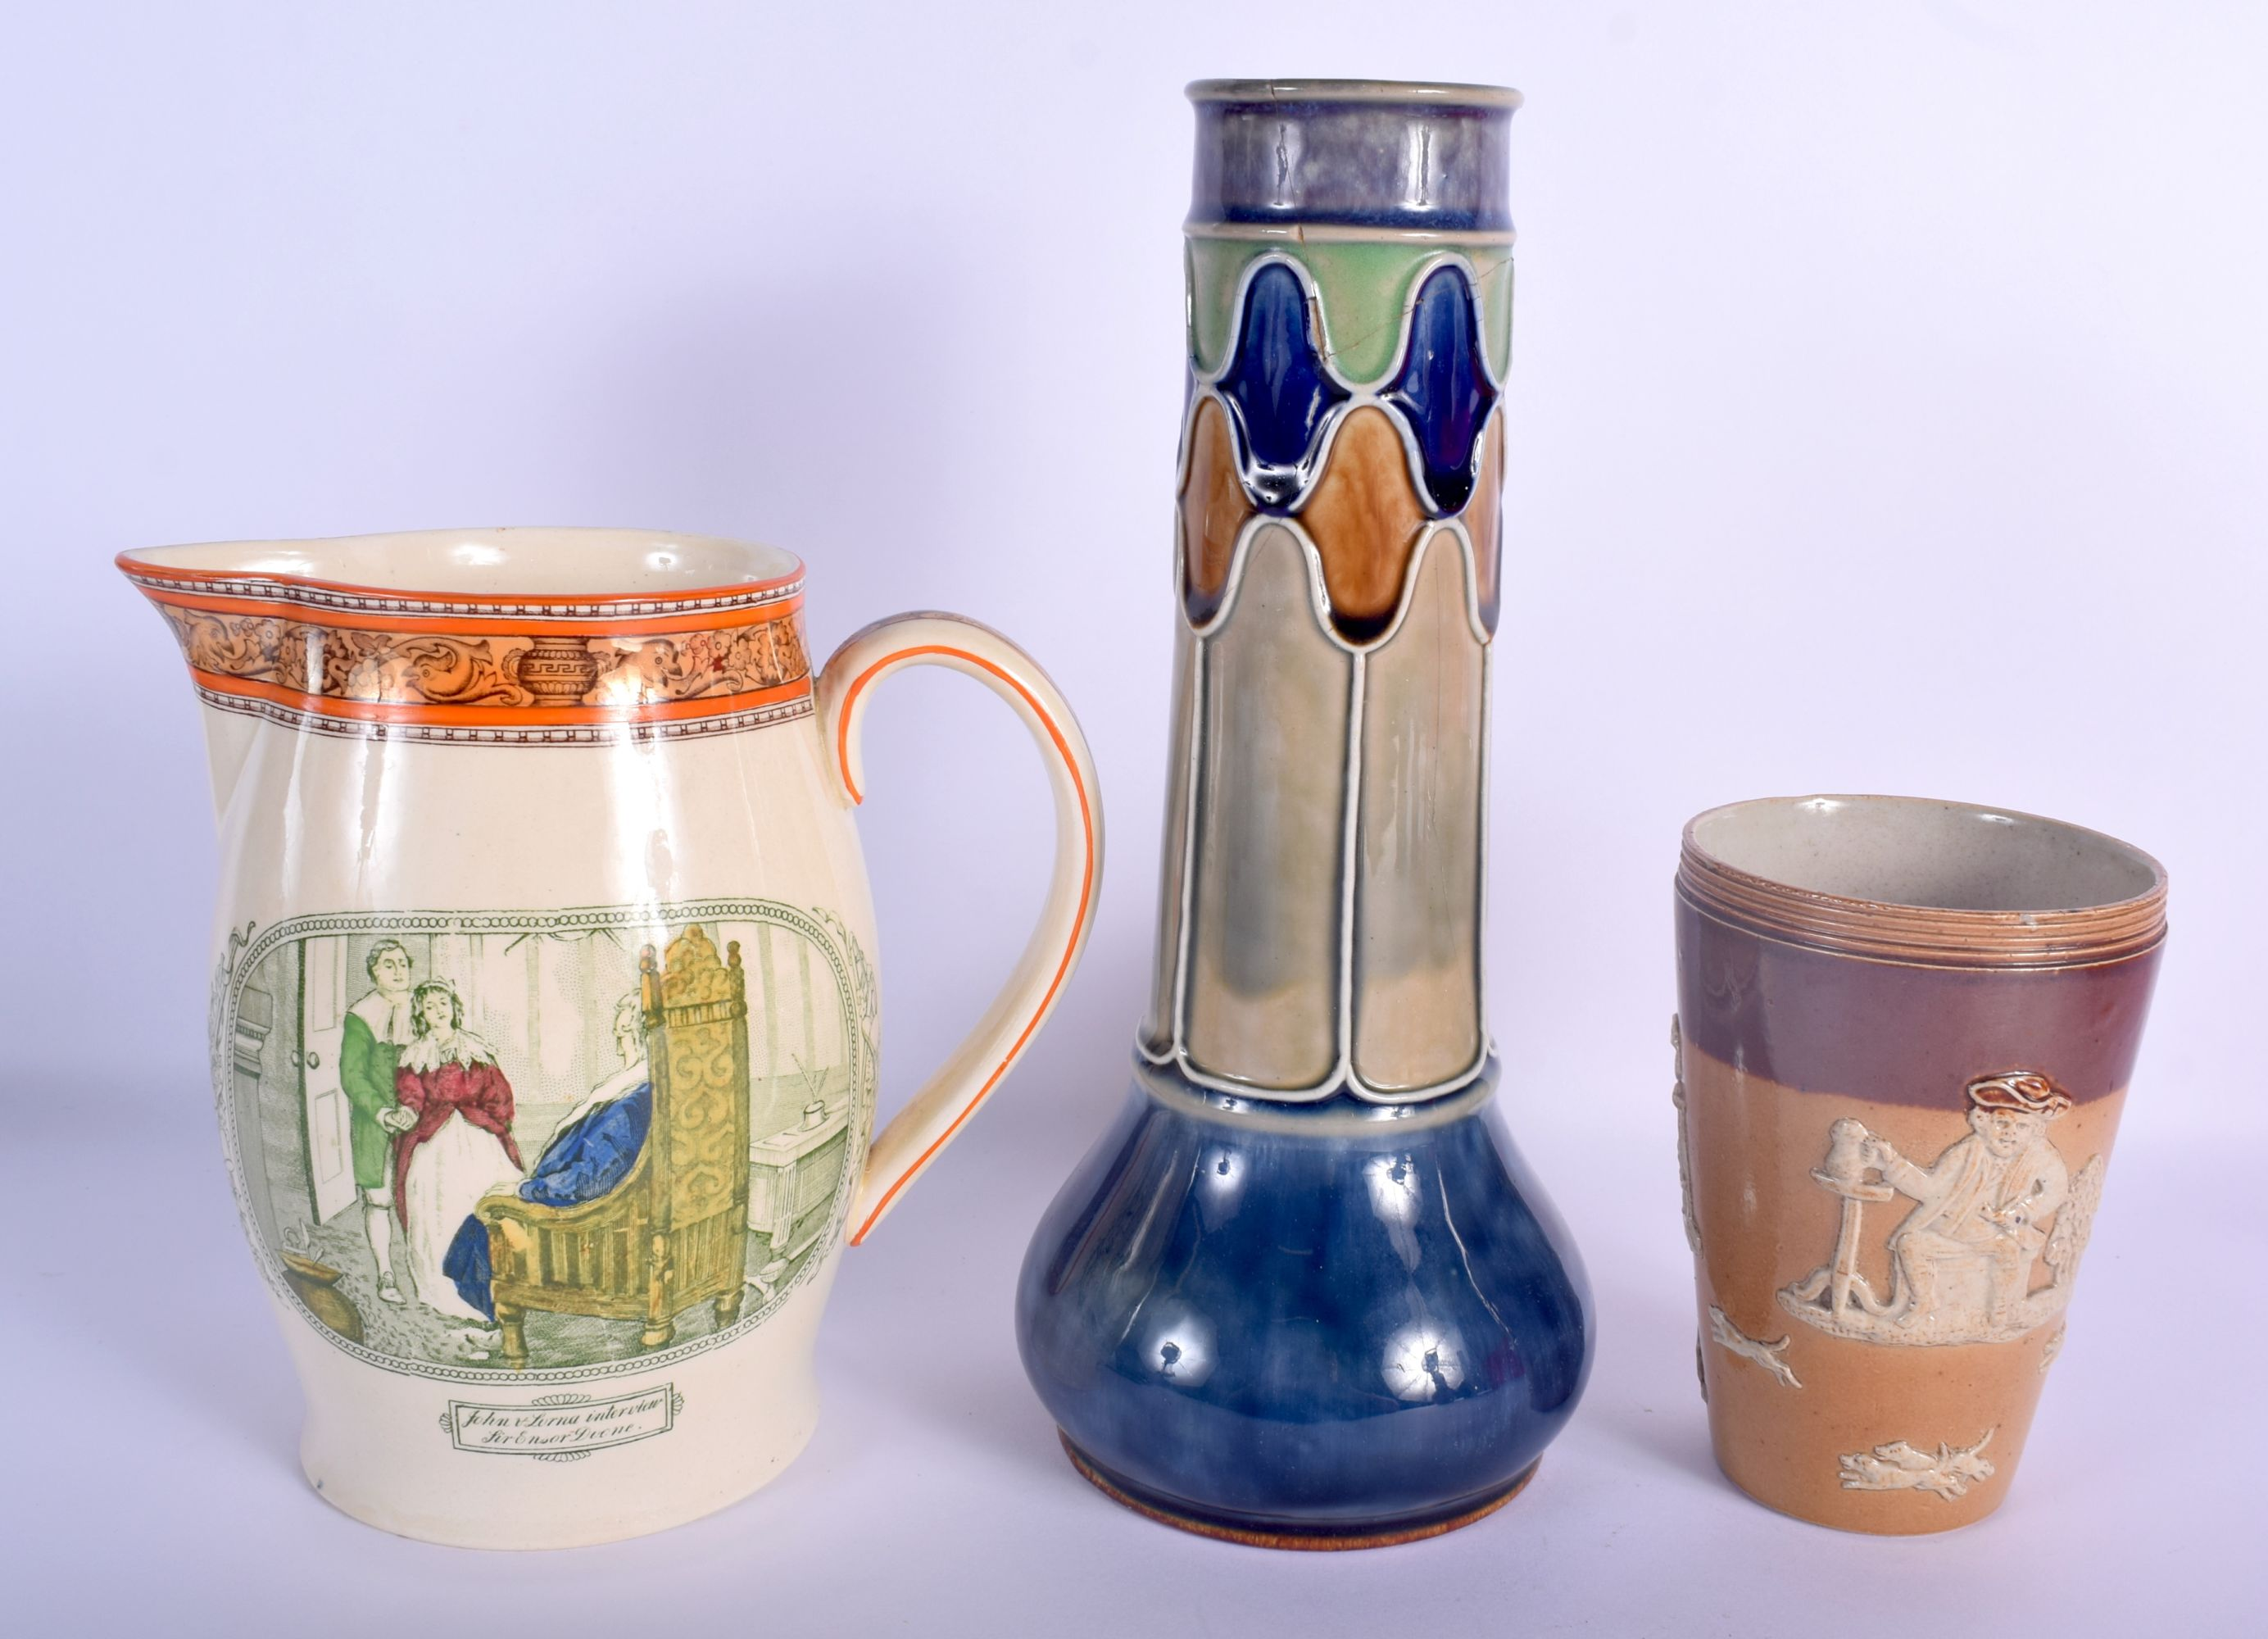 AN ANTIQUE DOULTON STONEWARE BEAKER together with another Doulton vase & a rare Adams jug. Largest 2